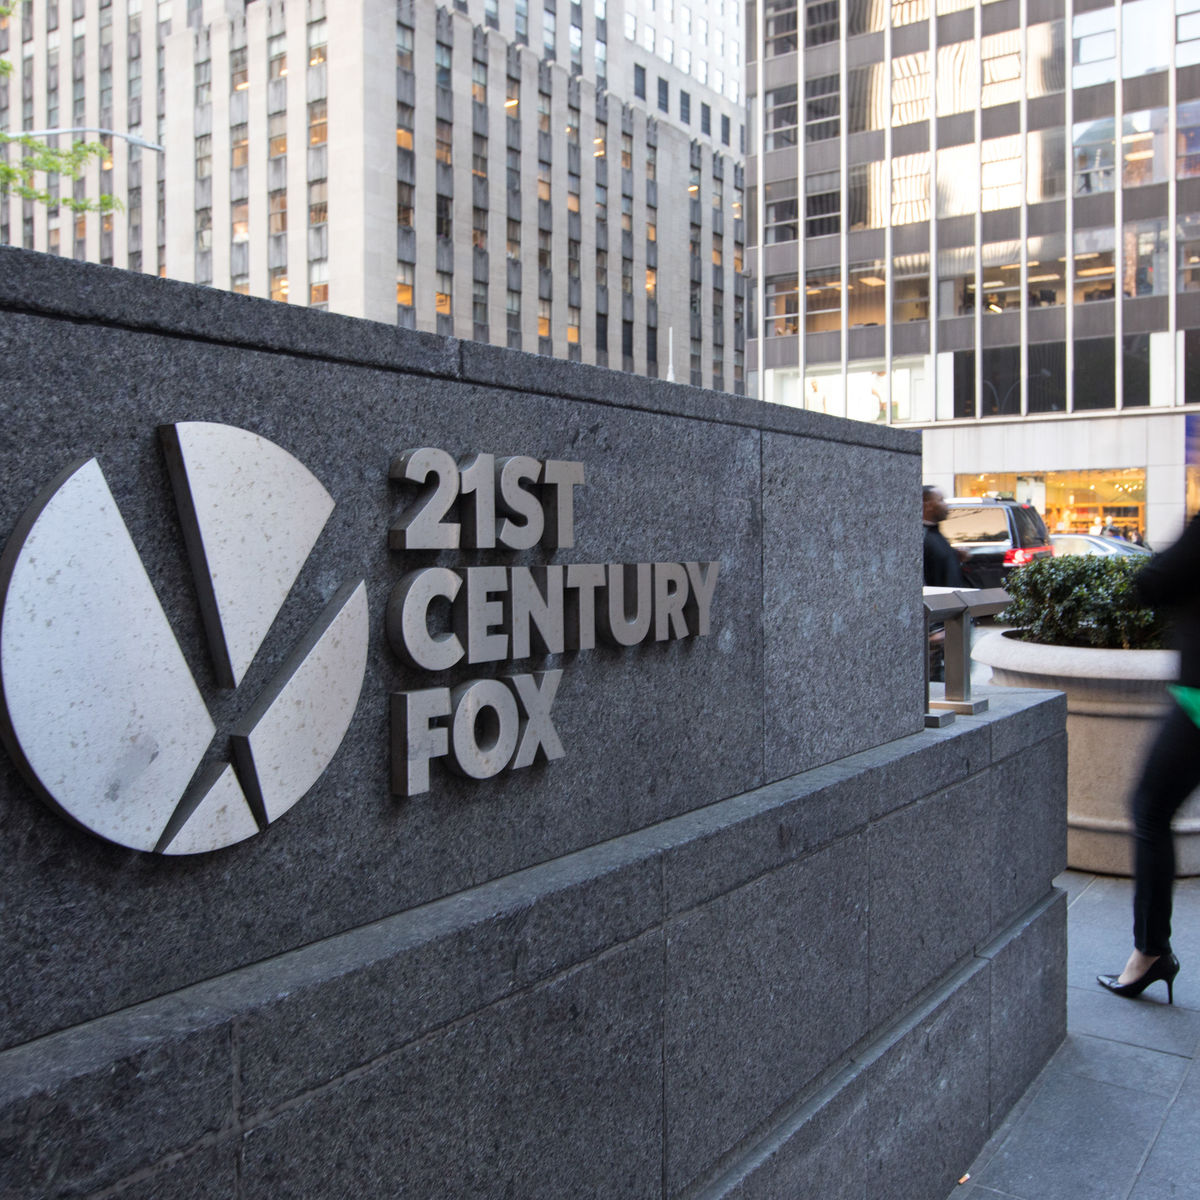 Comcast drops bid for 21st Century Fox assets, letting Disney win